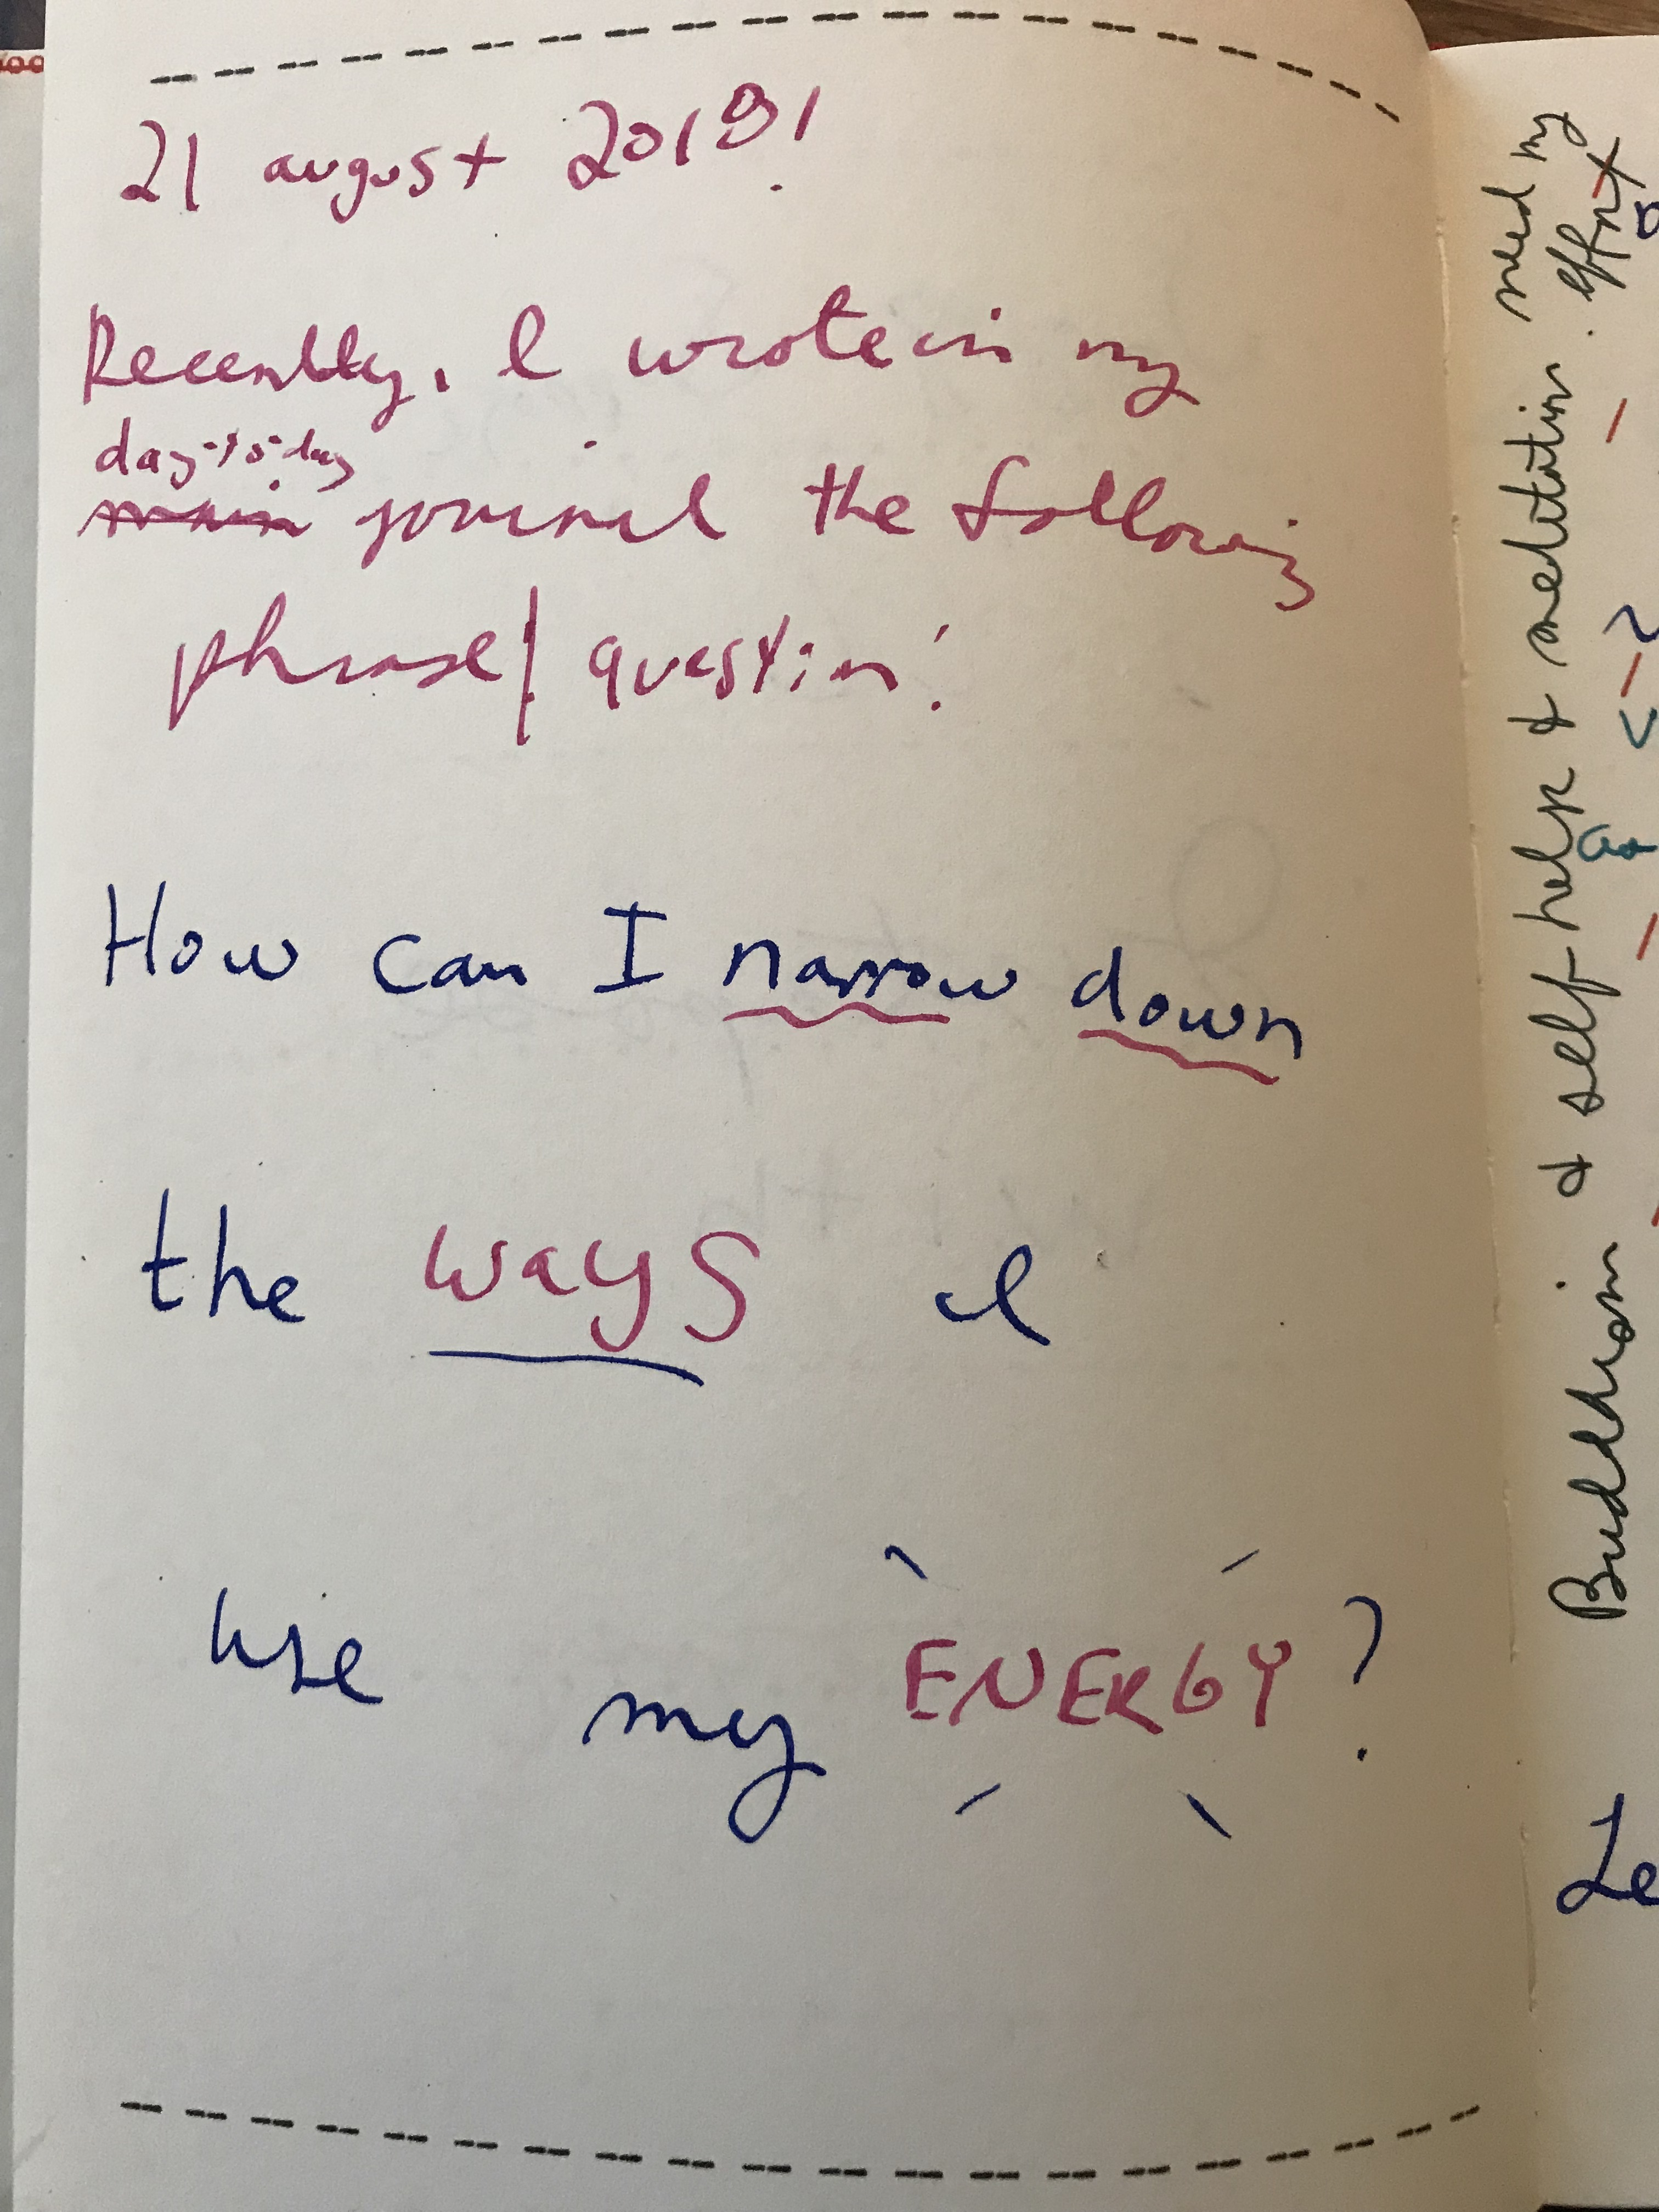 journal page image that includes handwritten scrawl of the blockquote that is directly below the image